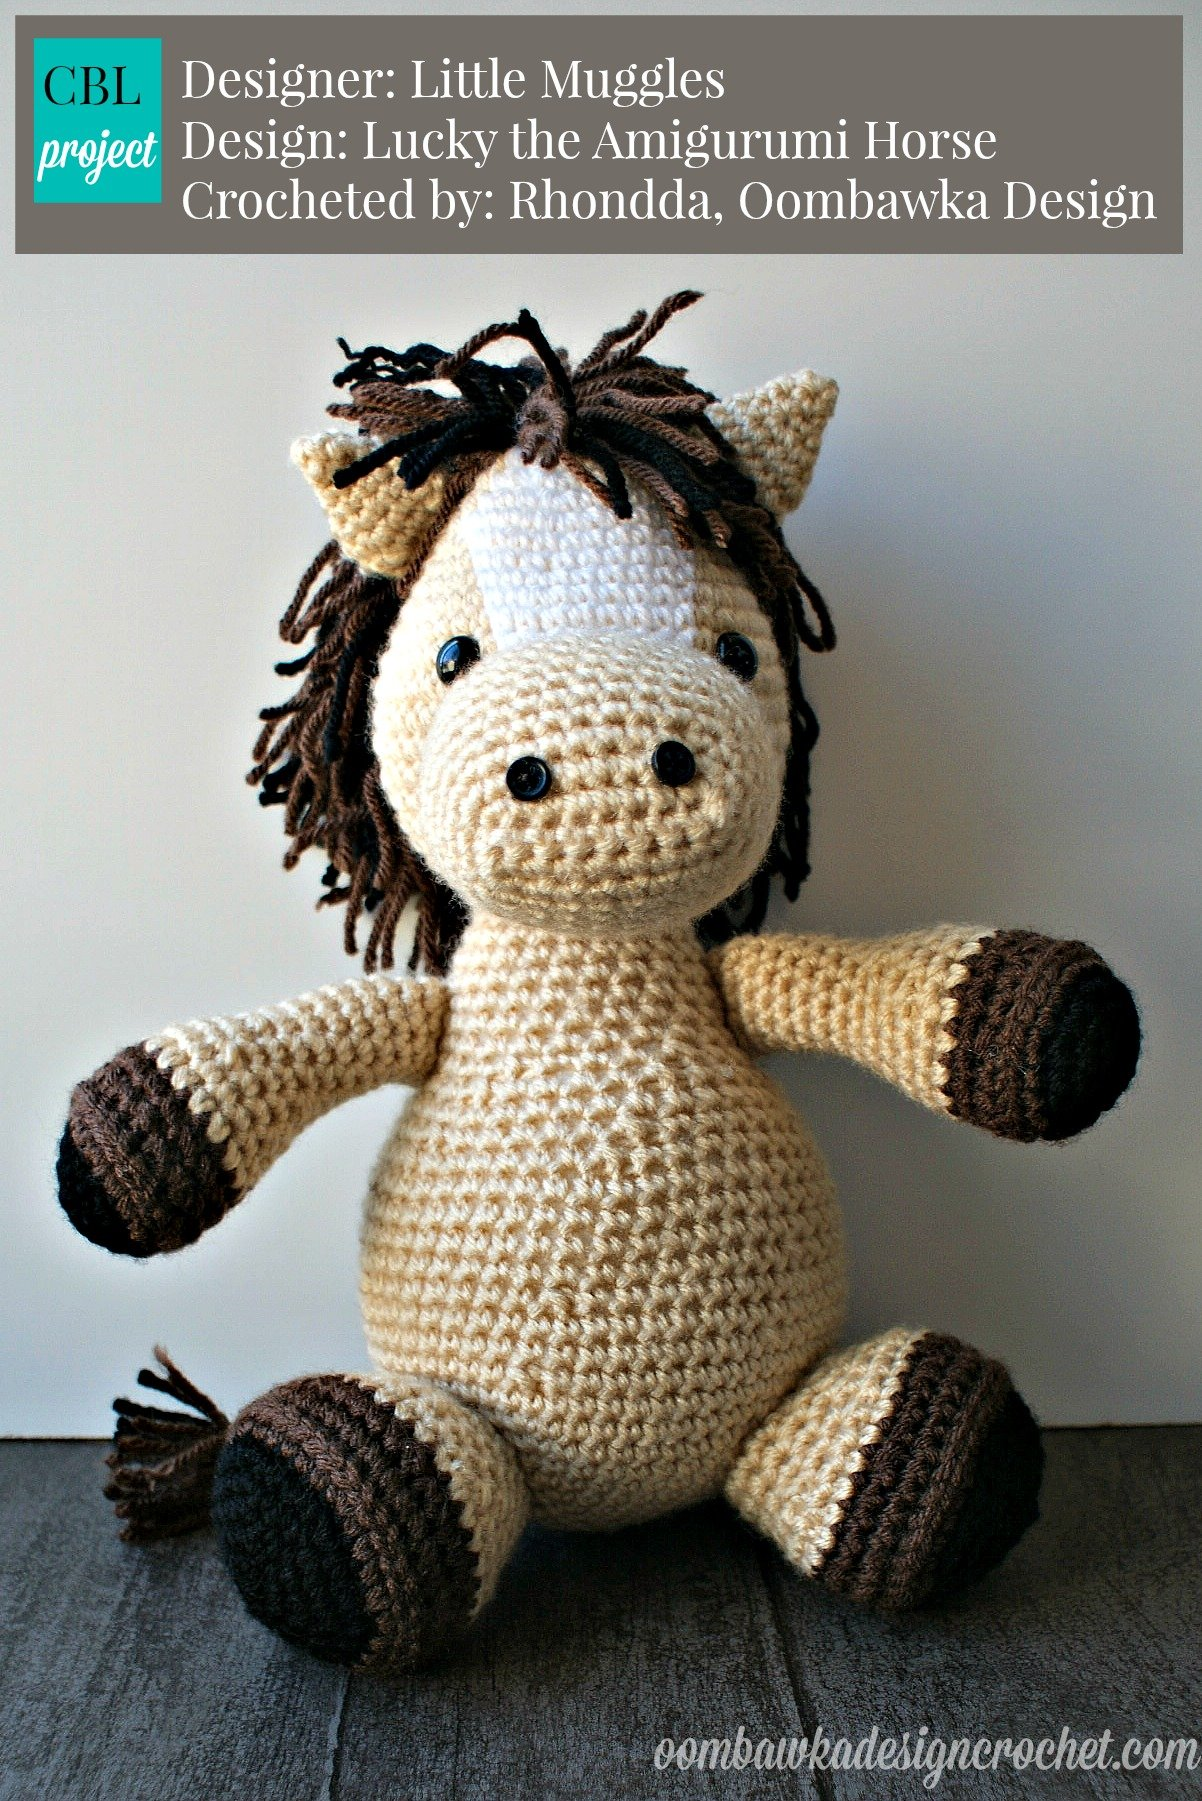 Amigurumi Mini Pony : Lucky the Amigurumi Horse Oombawka Design Crochet